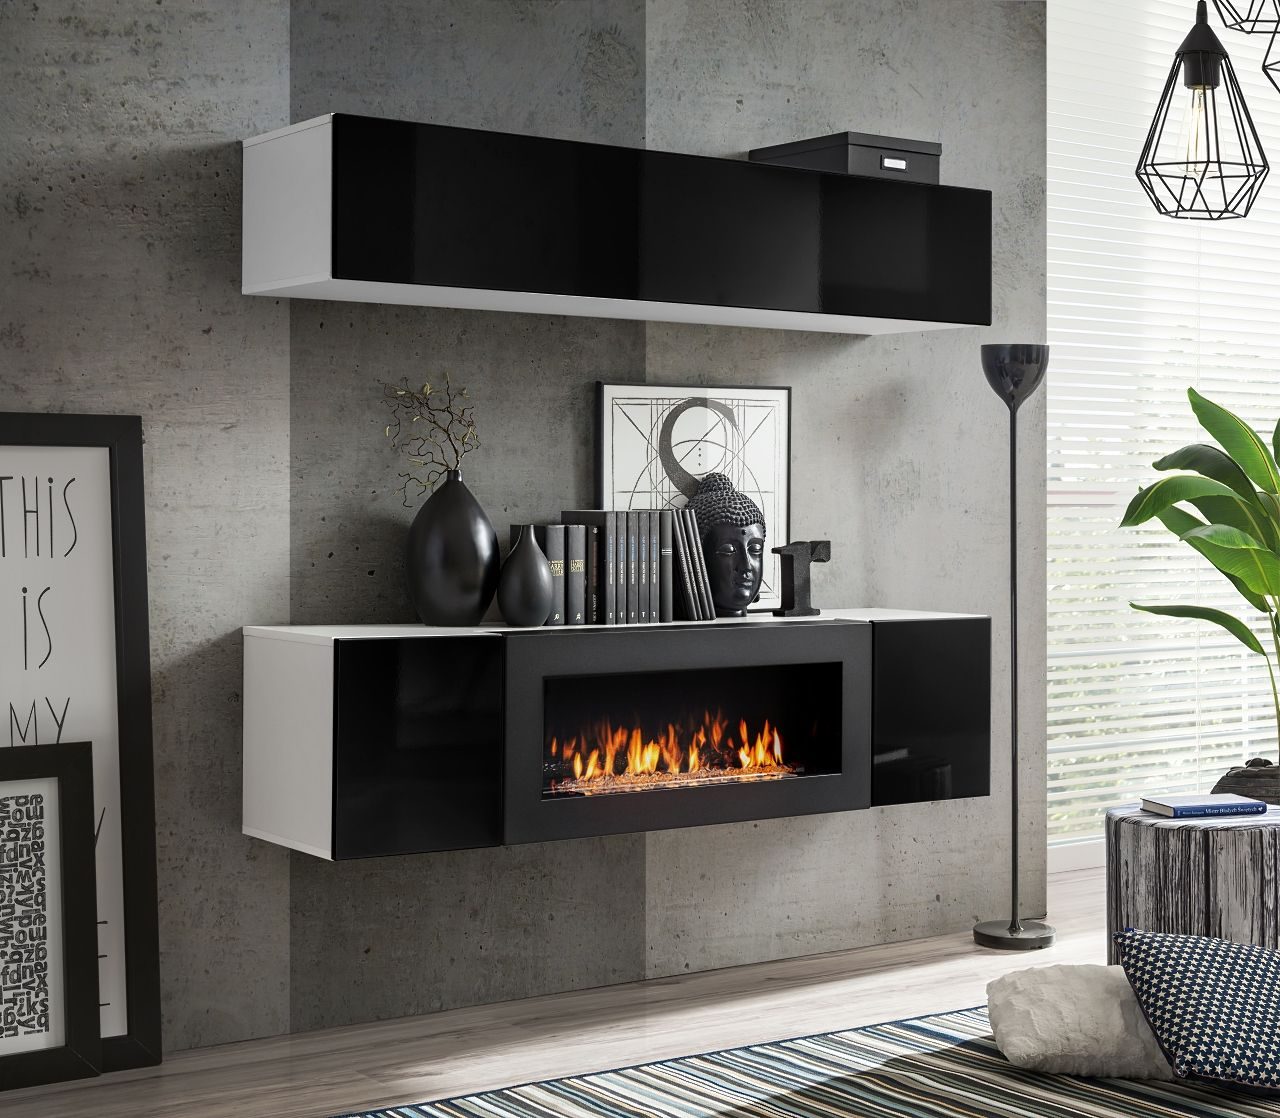 Idea N1 Wall Cabinet With Fireplace Living Room Wall Units Living Room Entertainment Center Modern Wall Units